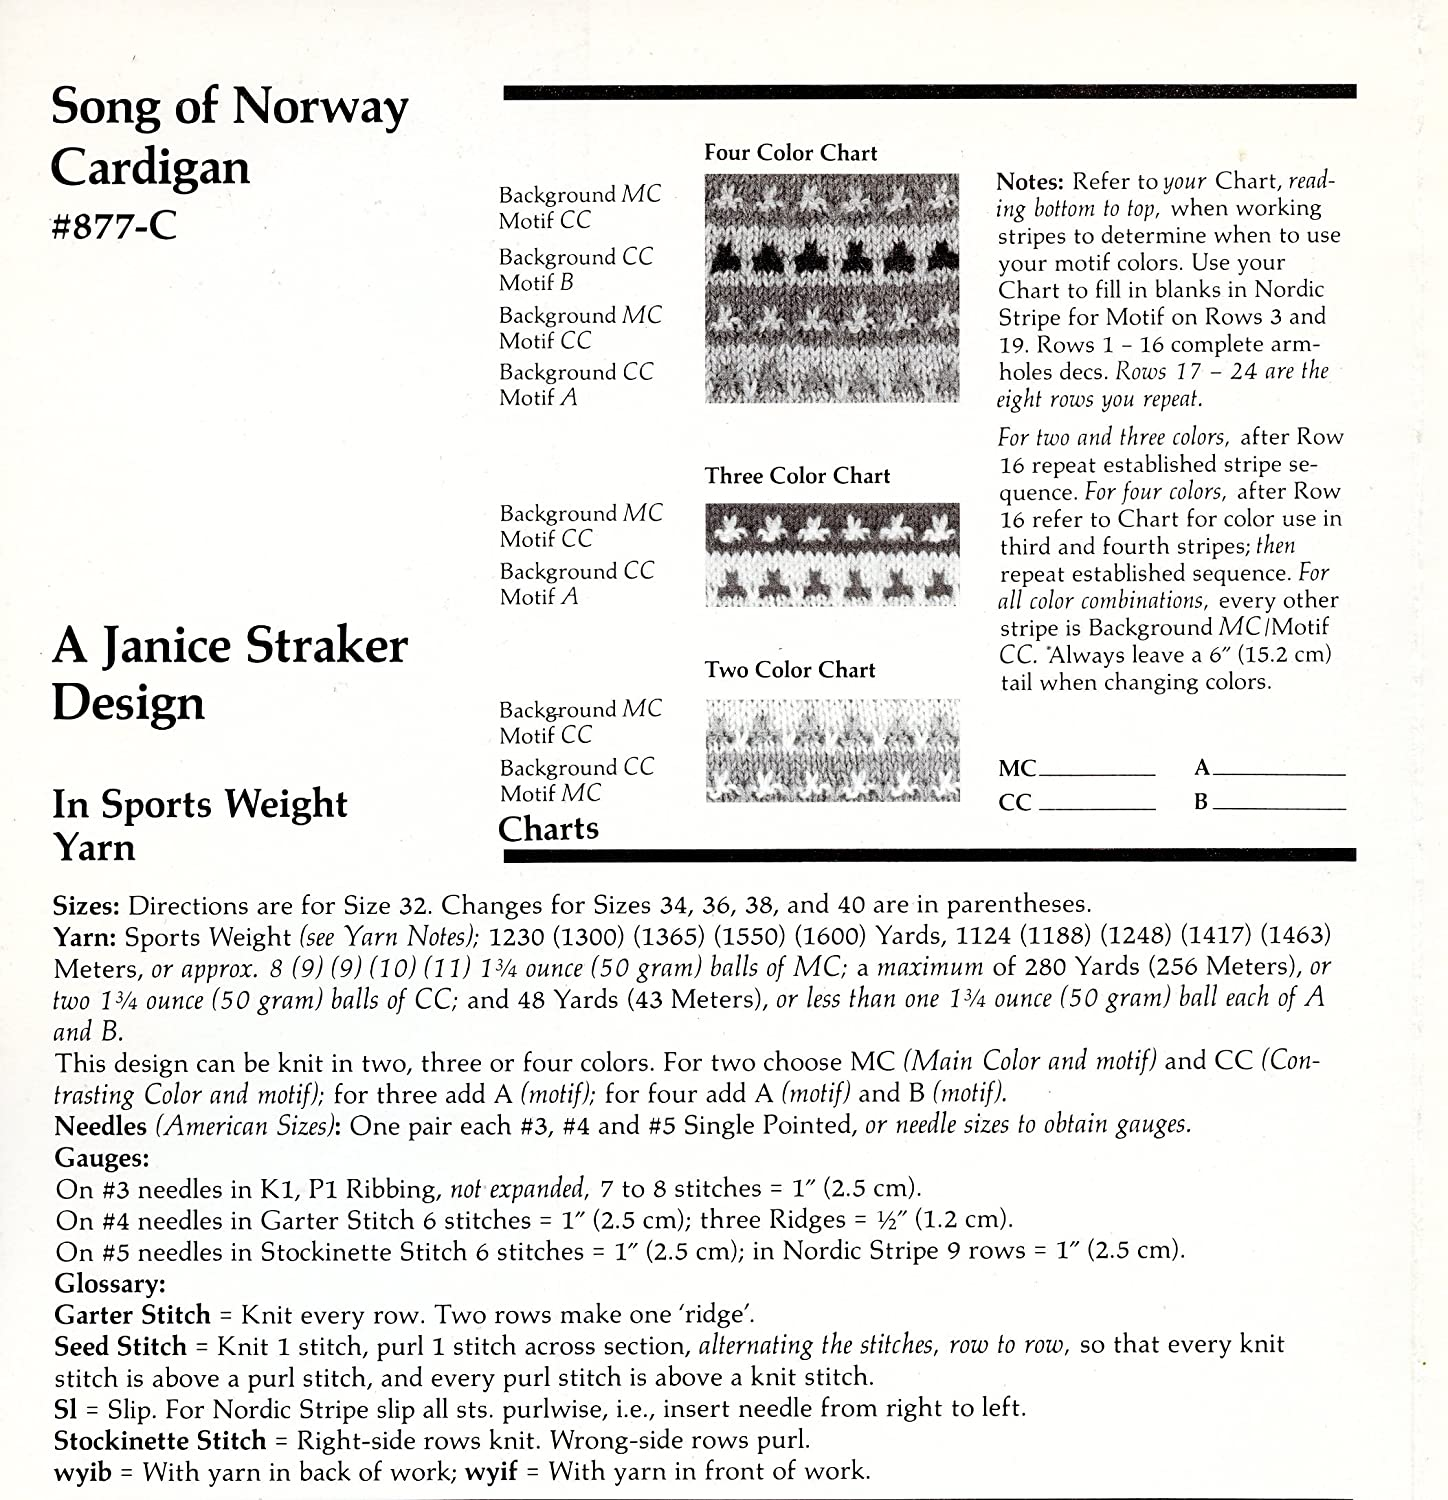 Amazon a straker classic design knitting pattern 877 c amazon a straker classic design knitting pattern 877 c song of norway cardigan arts crafts sewing nvjuhfo Gallery